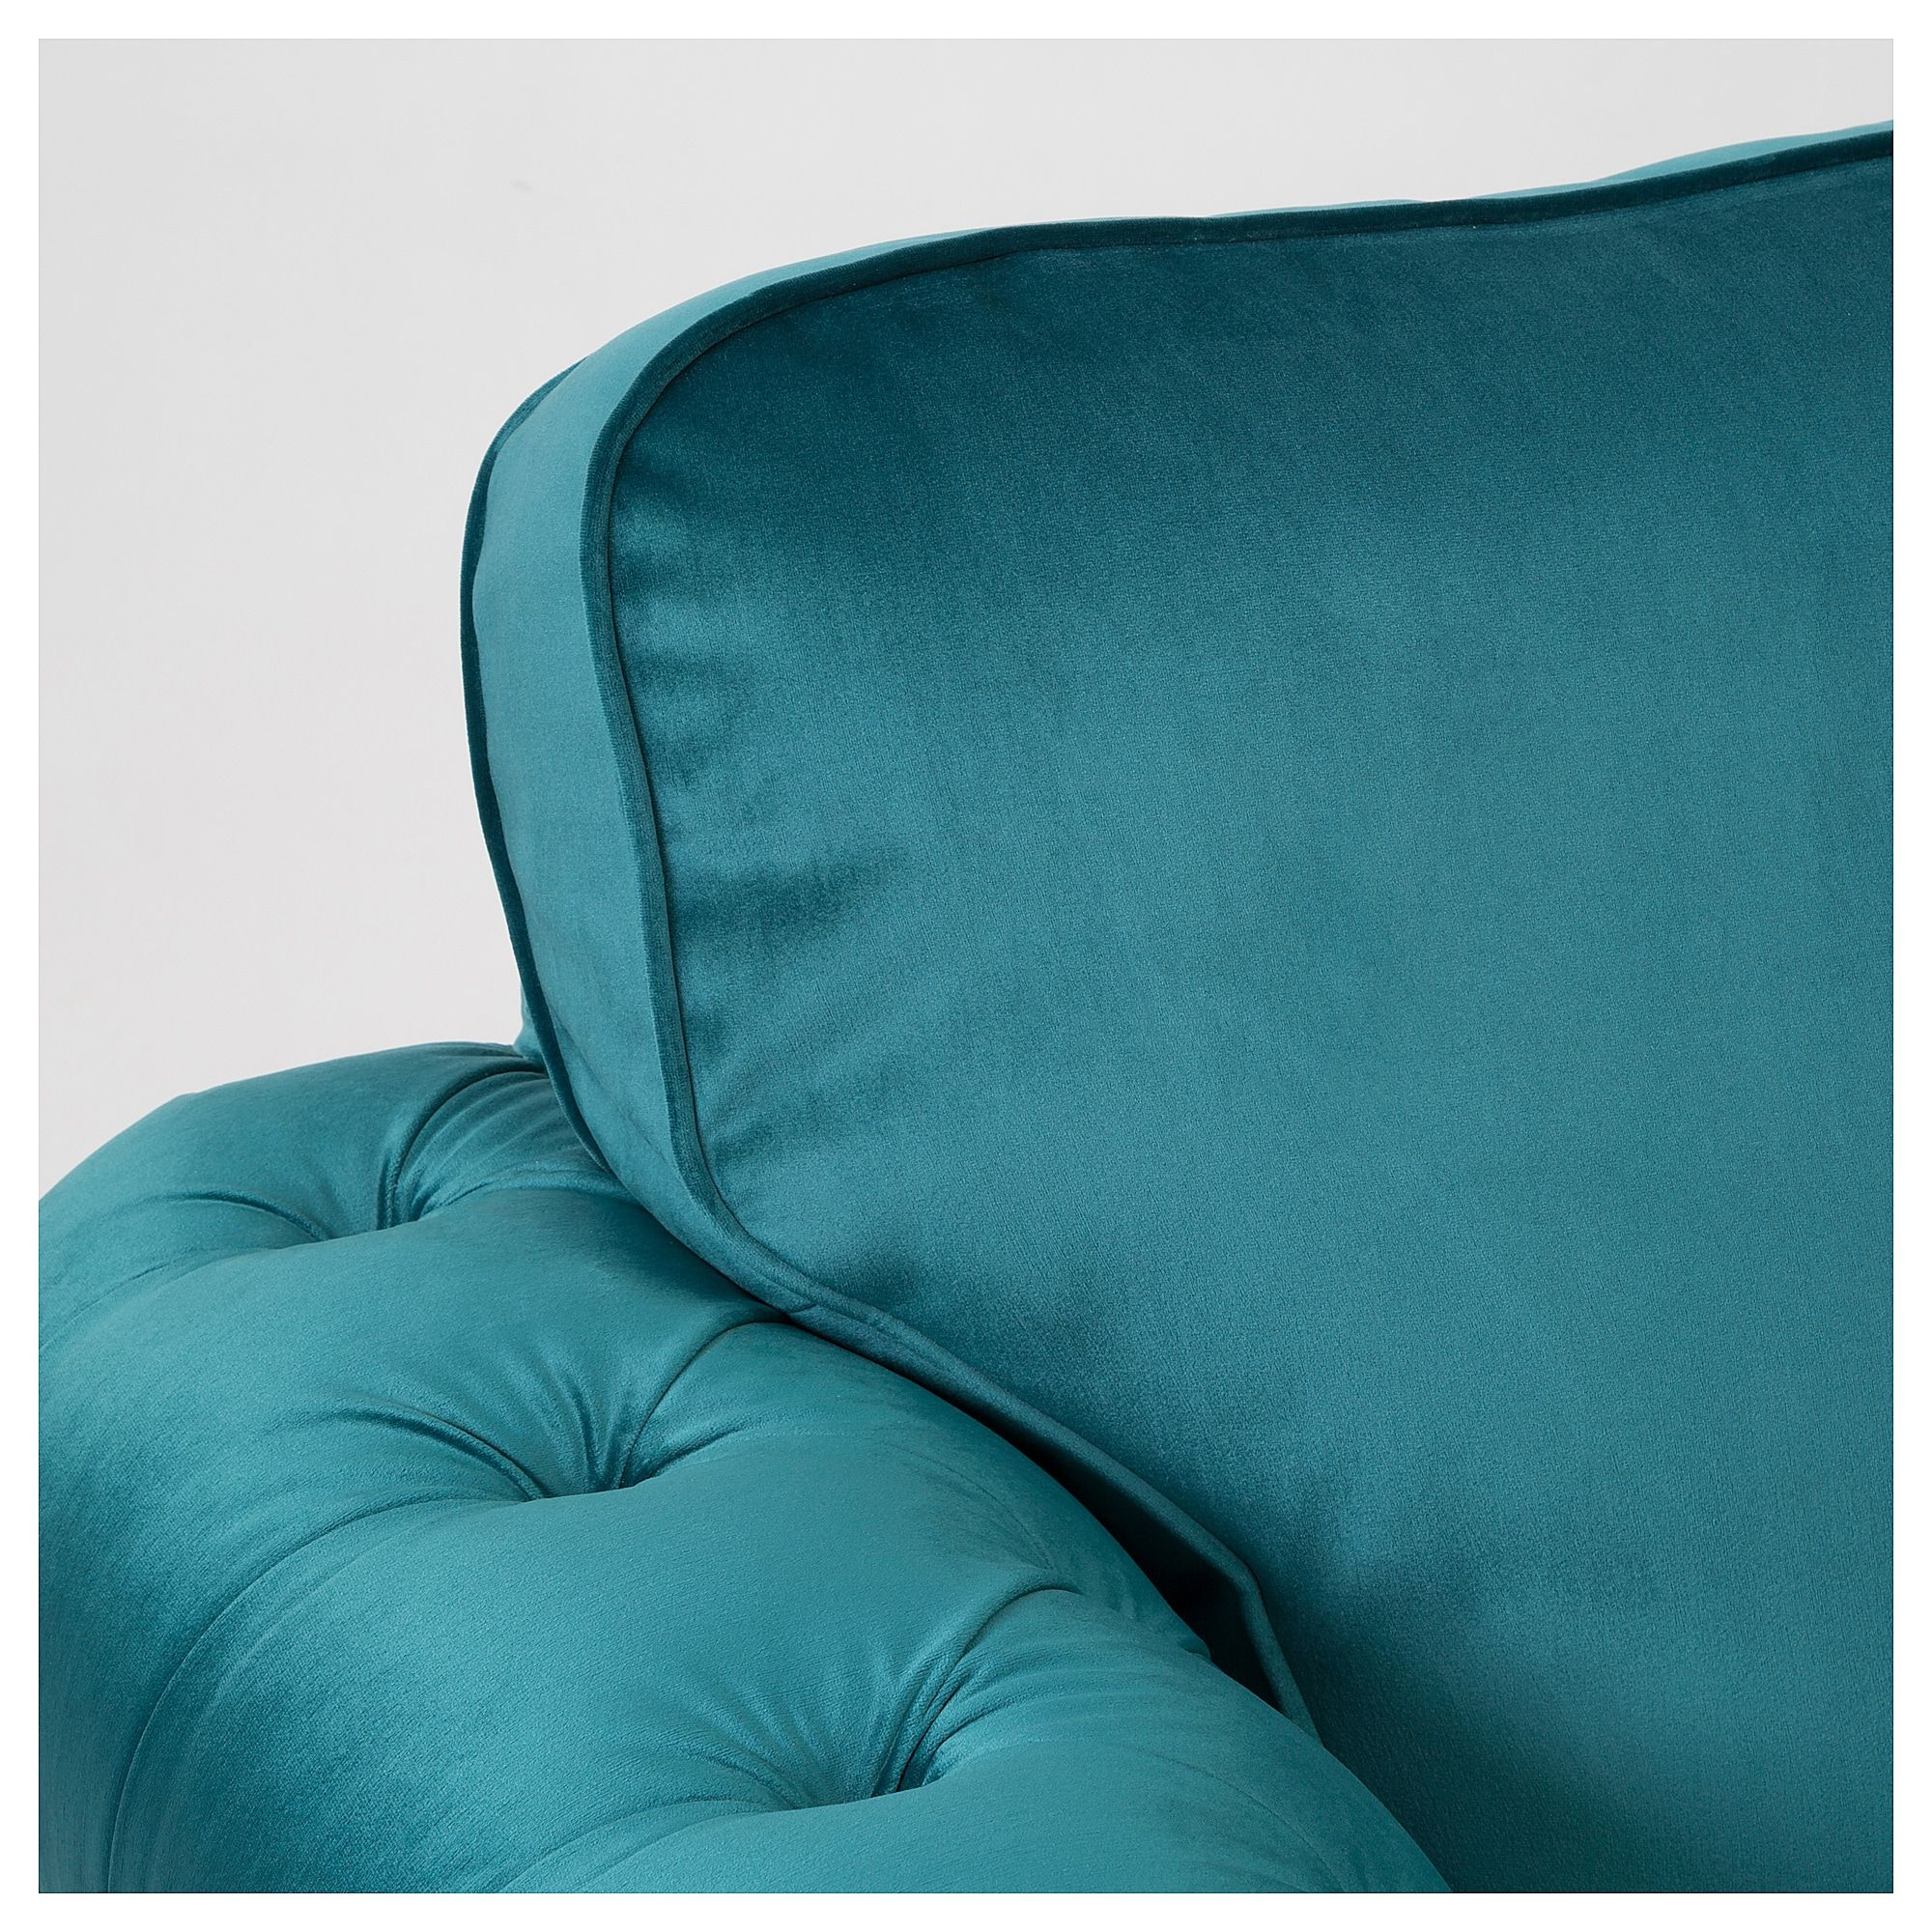 Shop for Furniture, Home Accessories & More Velvet sofa